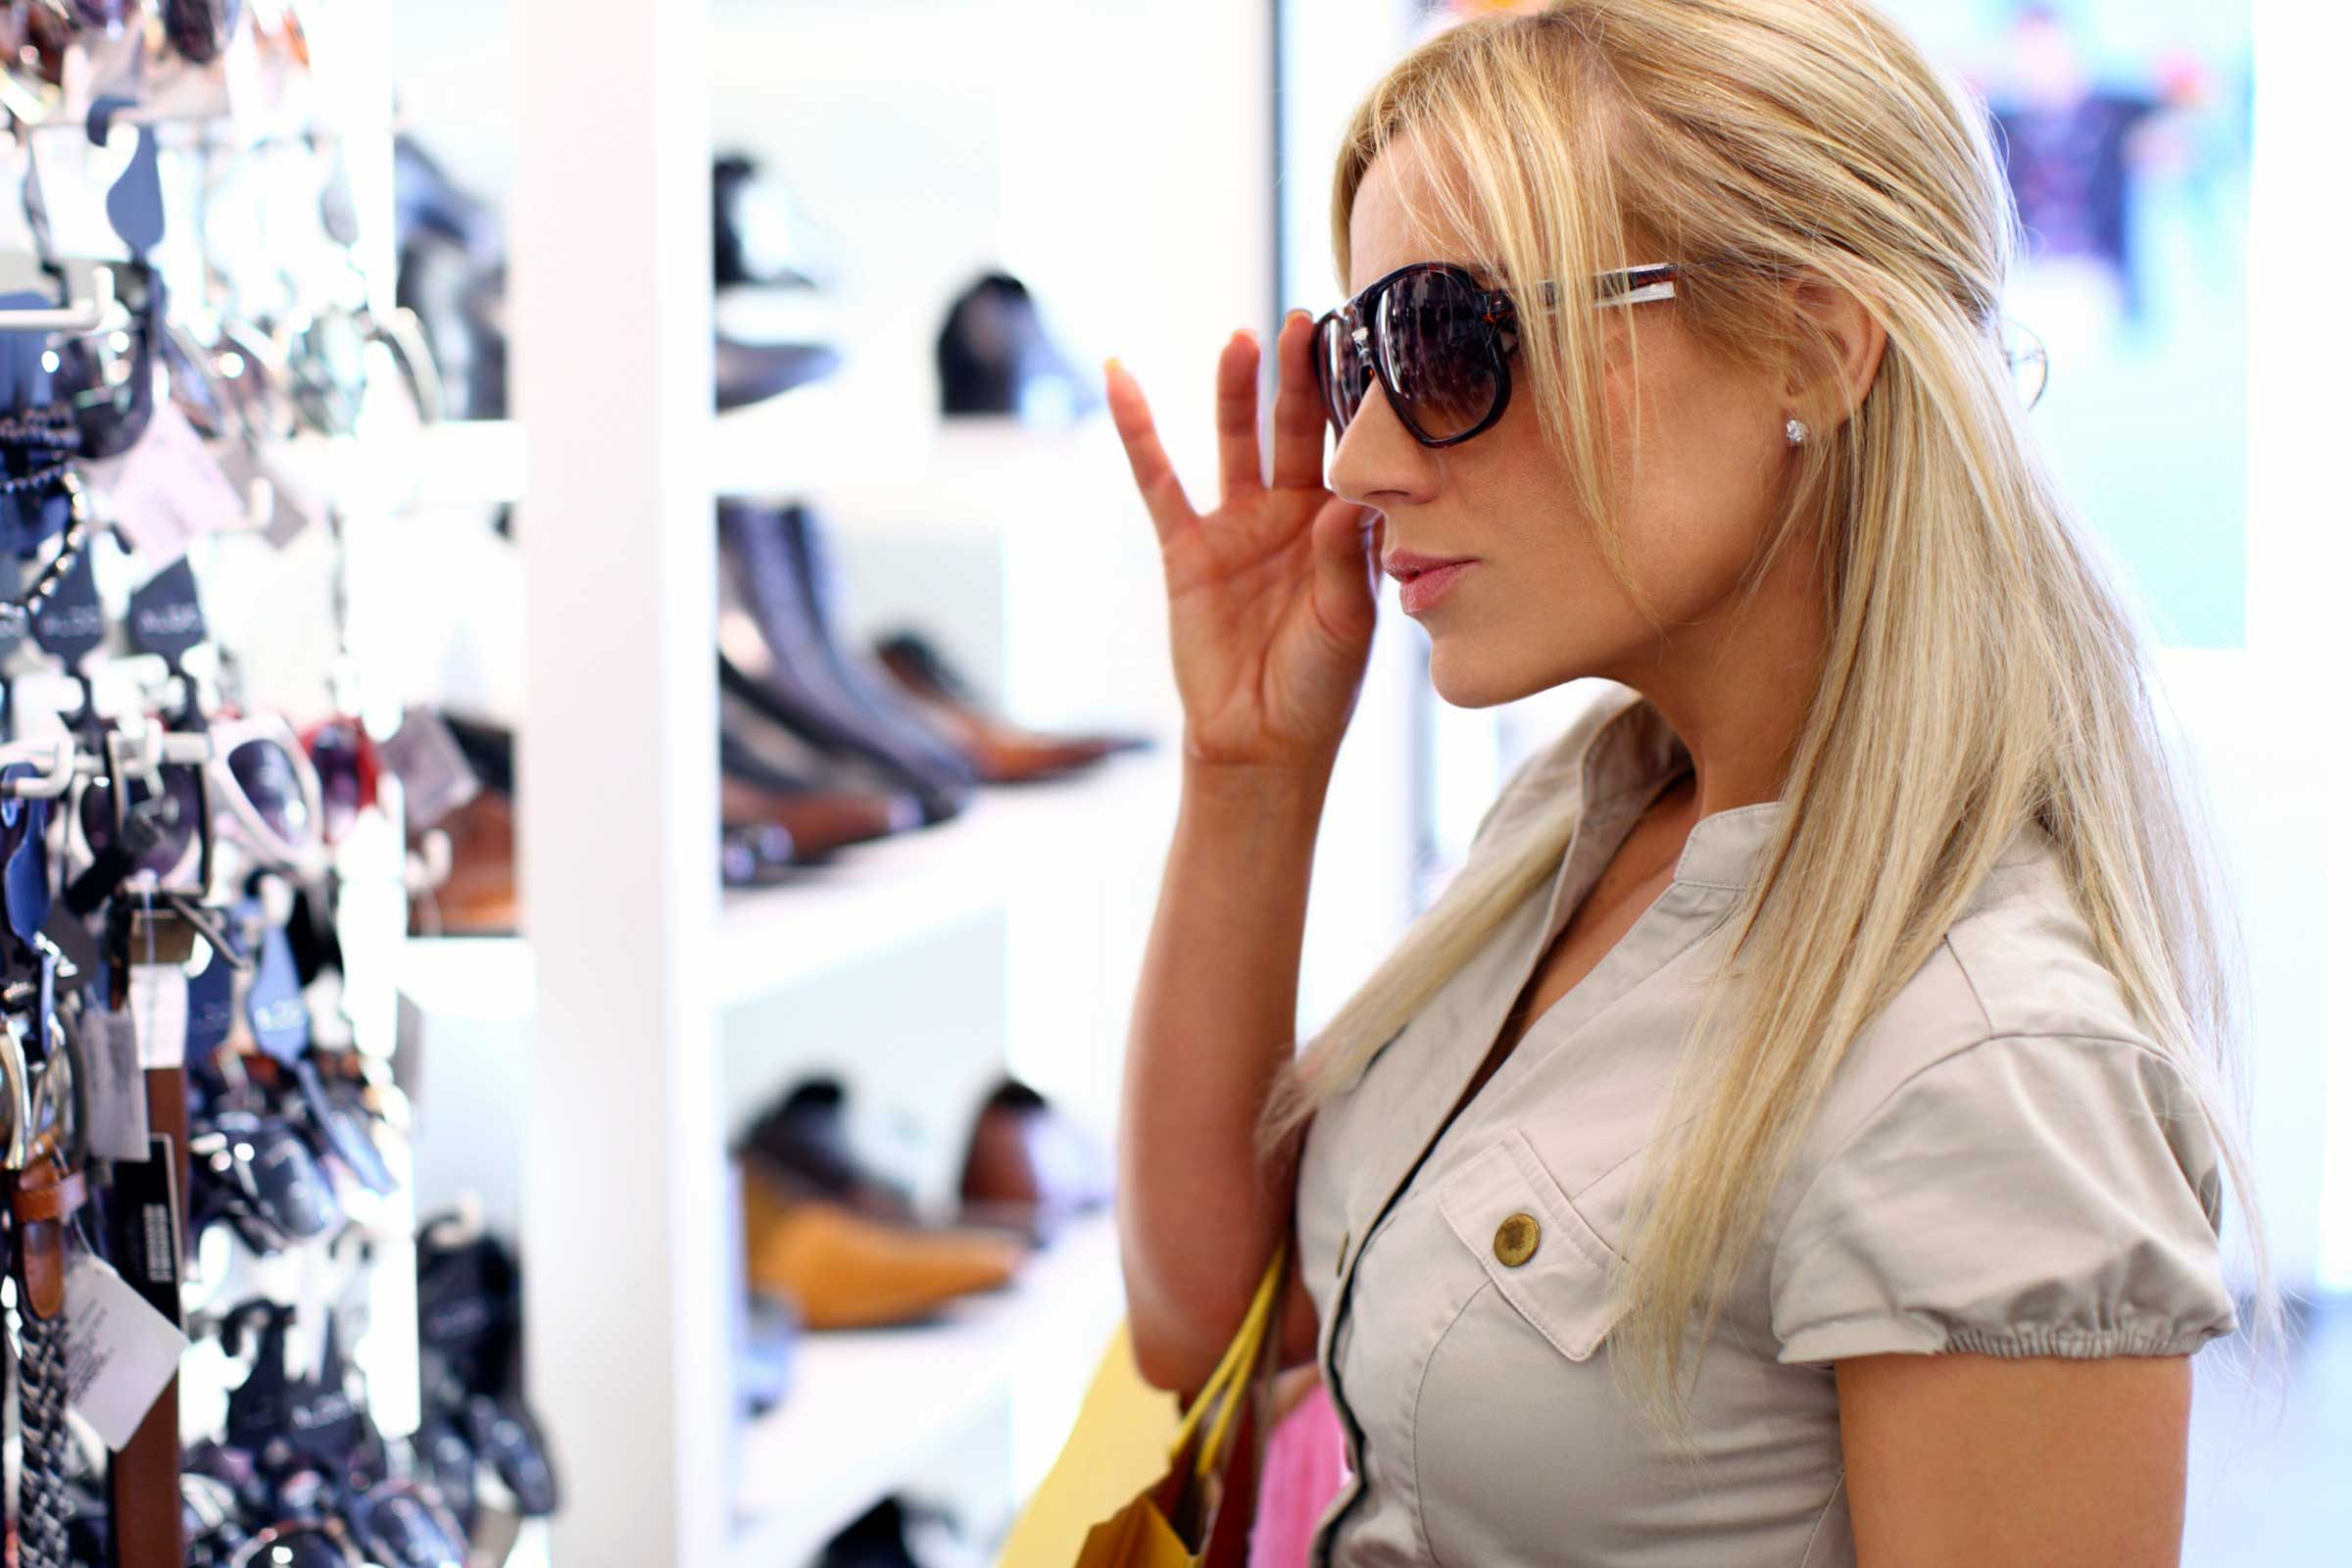 woman trying on sunglasses